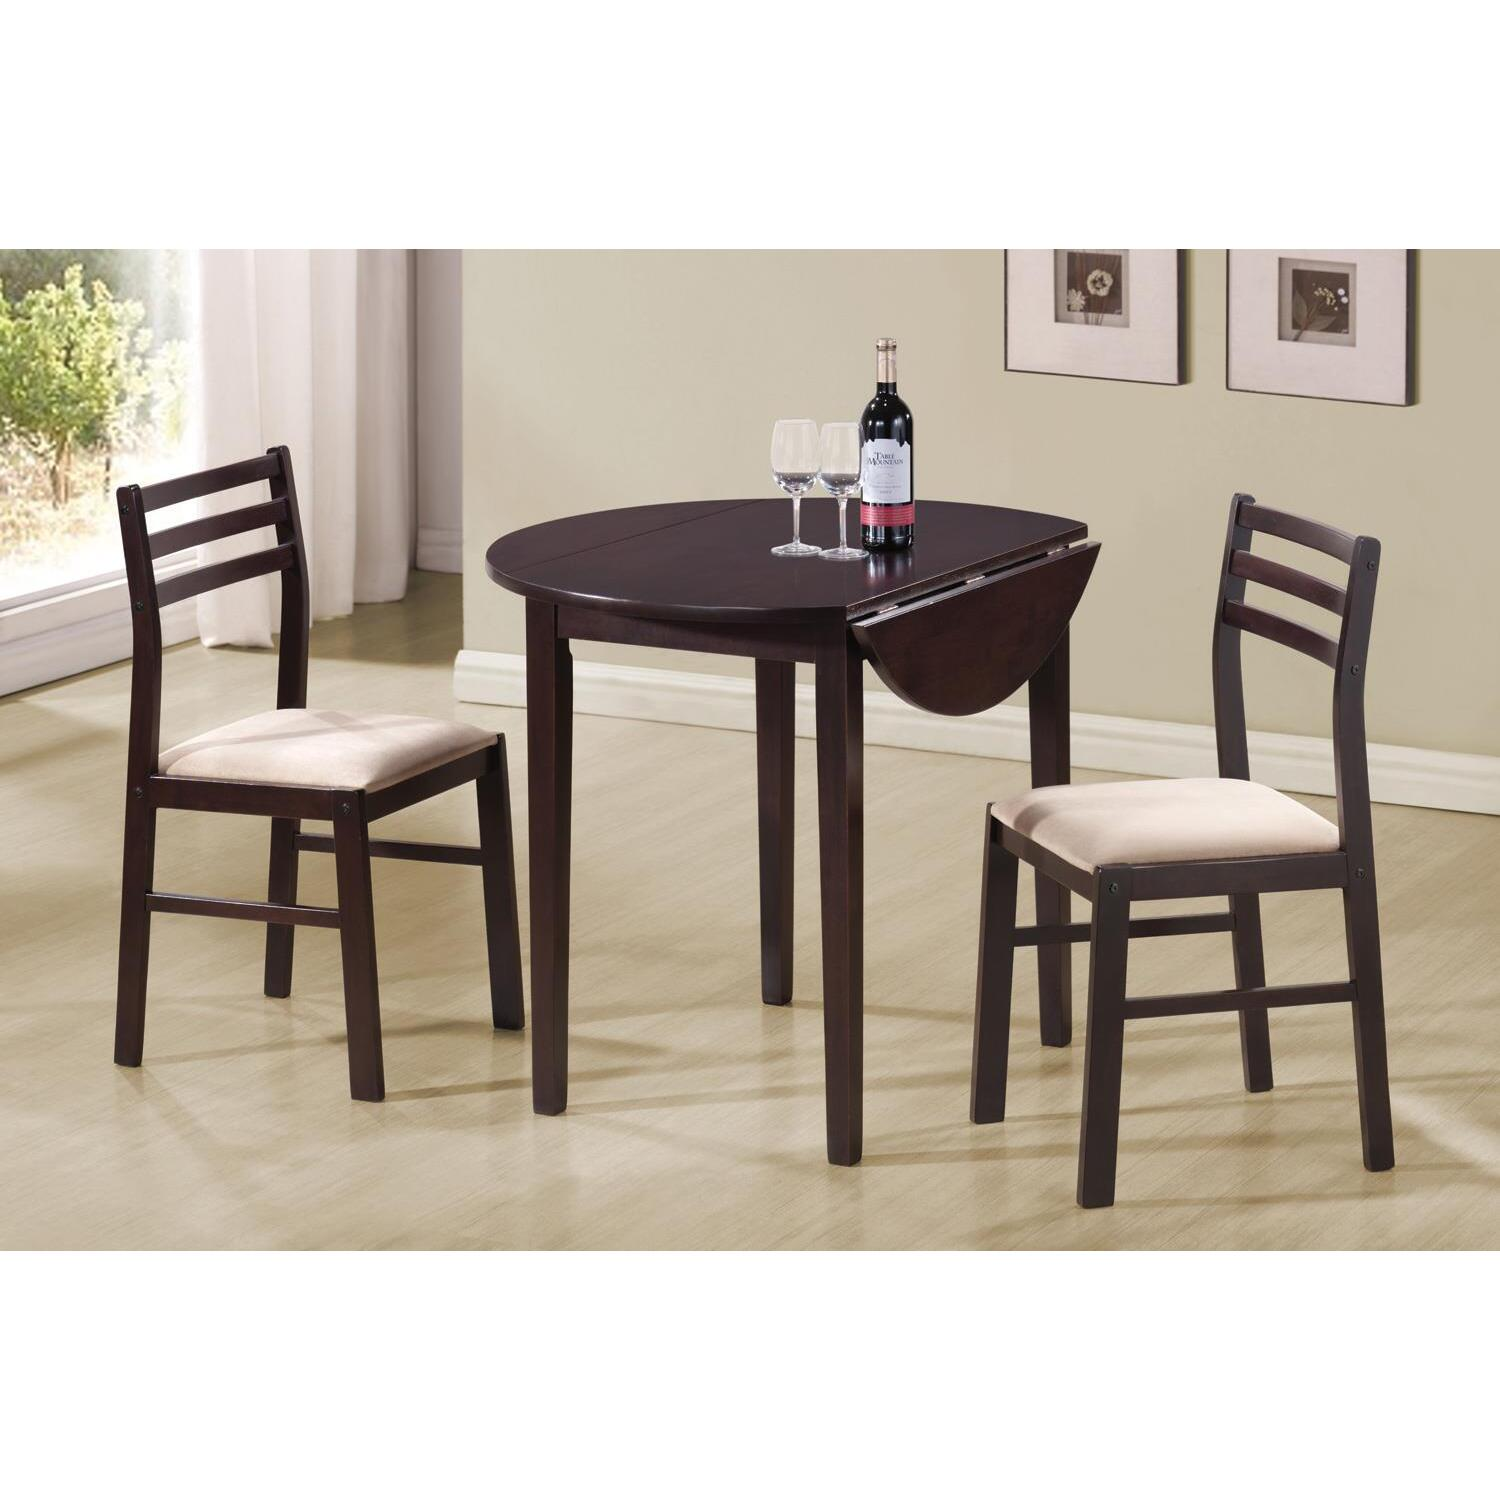 3 dining set ojcommerce